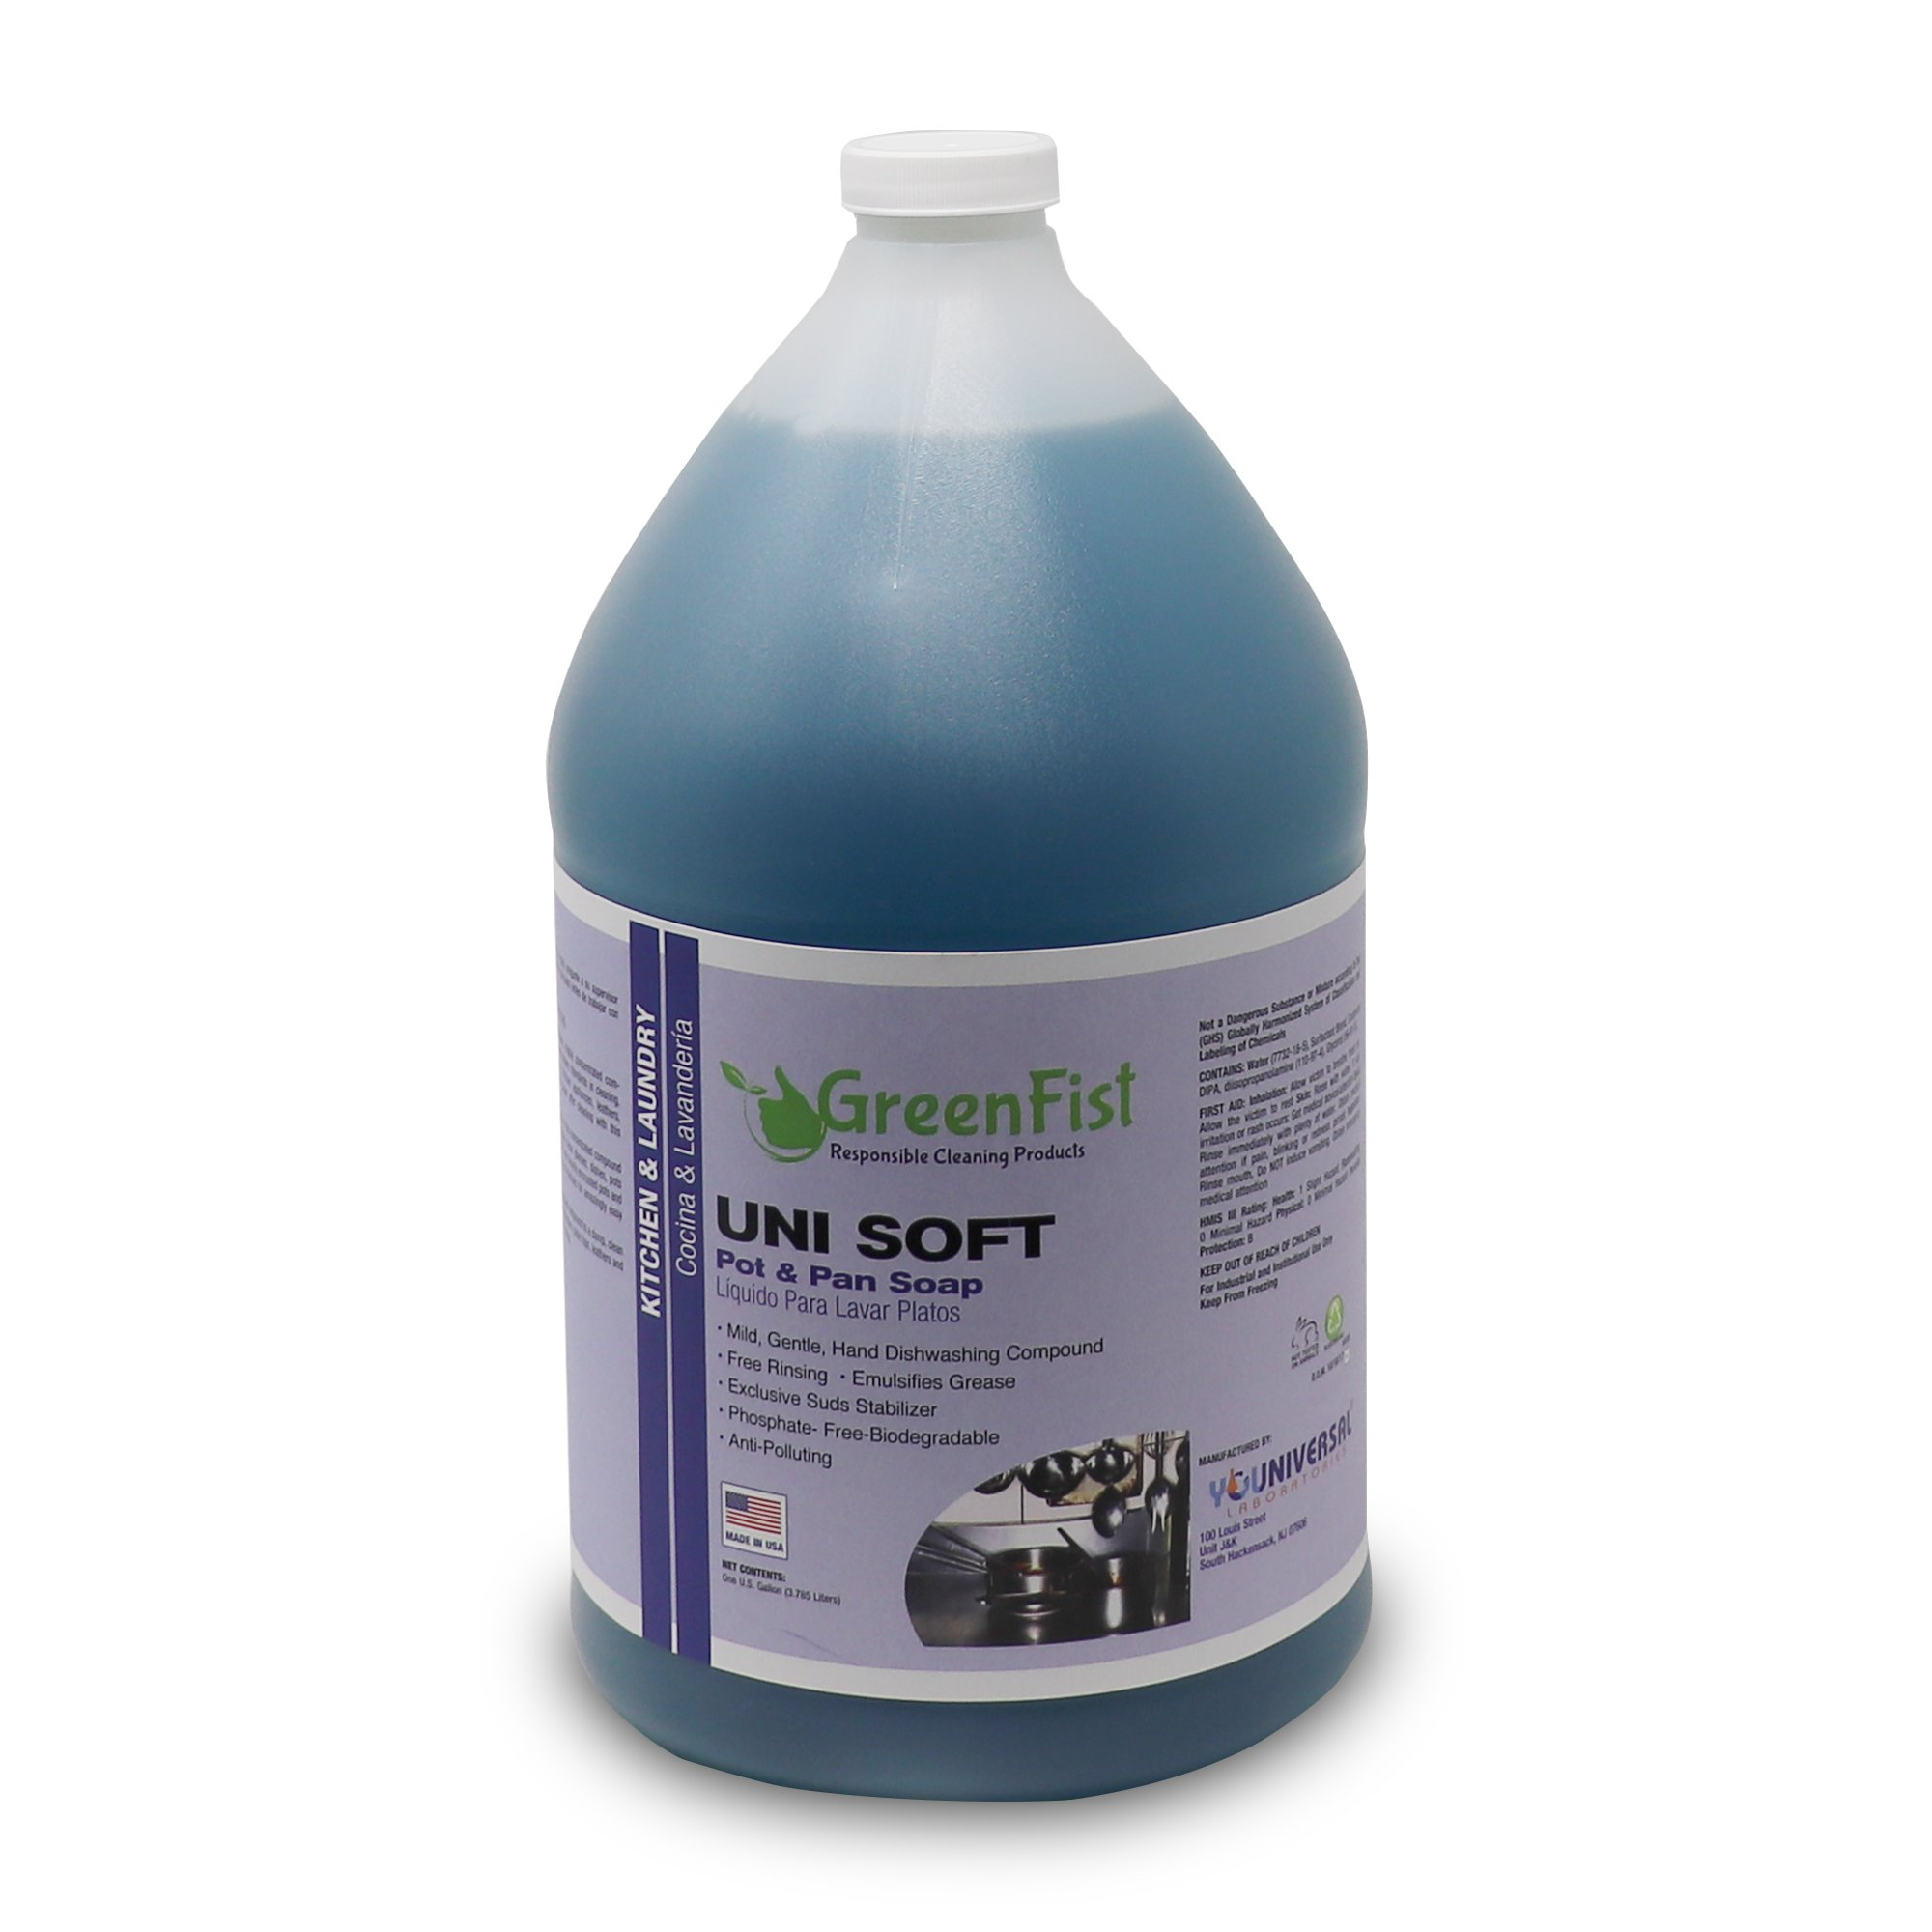 Unisoft Kitchen Commercial Hand Dish Detergent Pot & Pan Soap Liquid [Concentrated]Light or Heavy Use, 1 Gallon